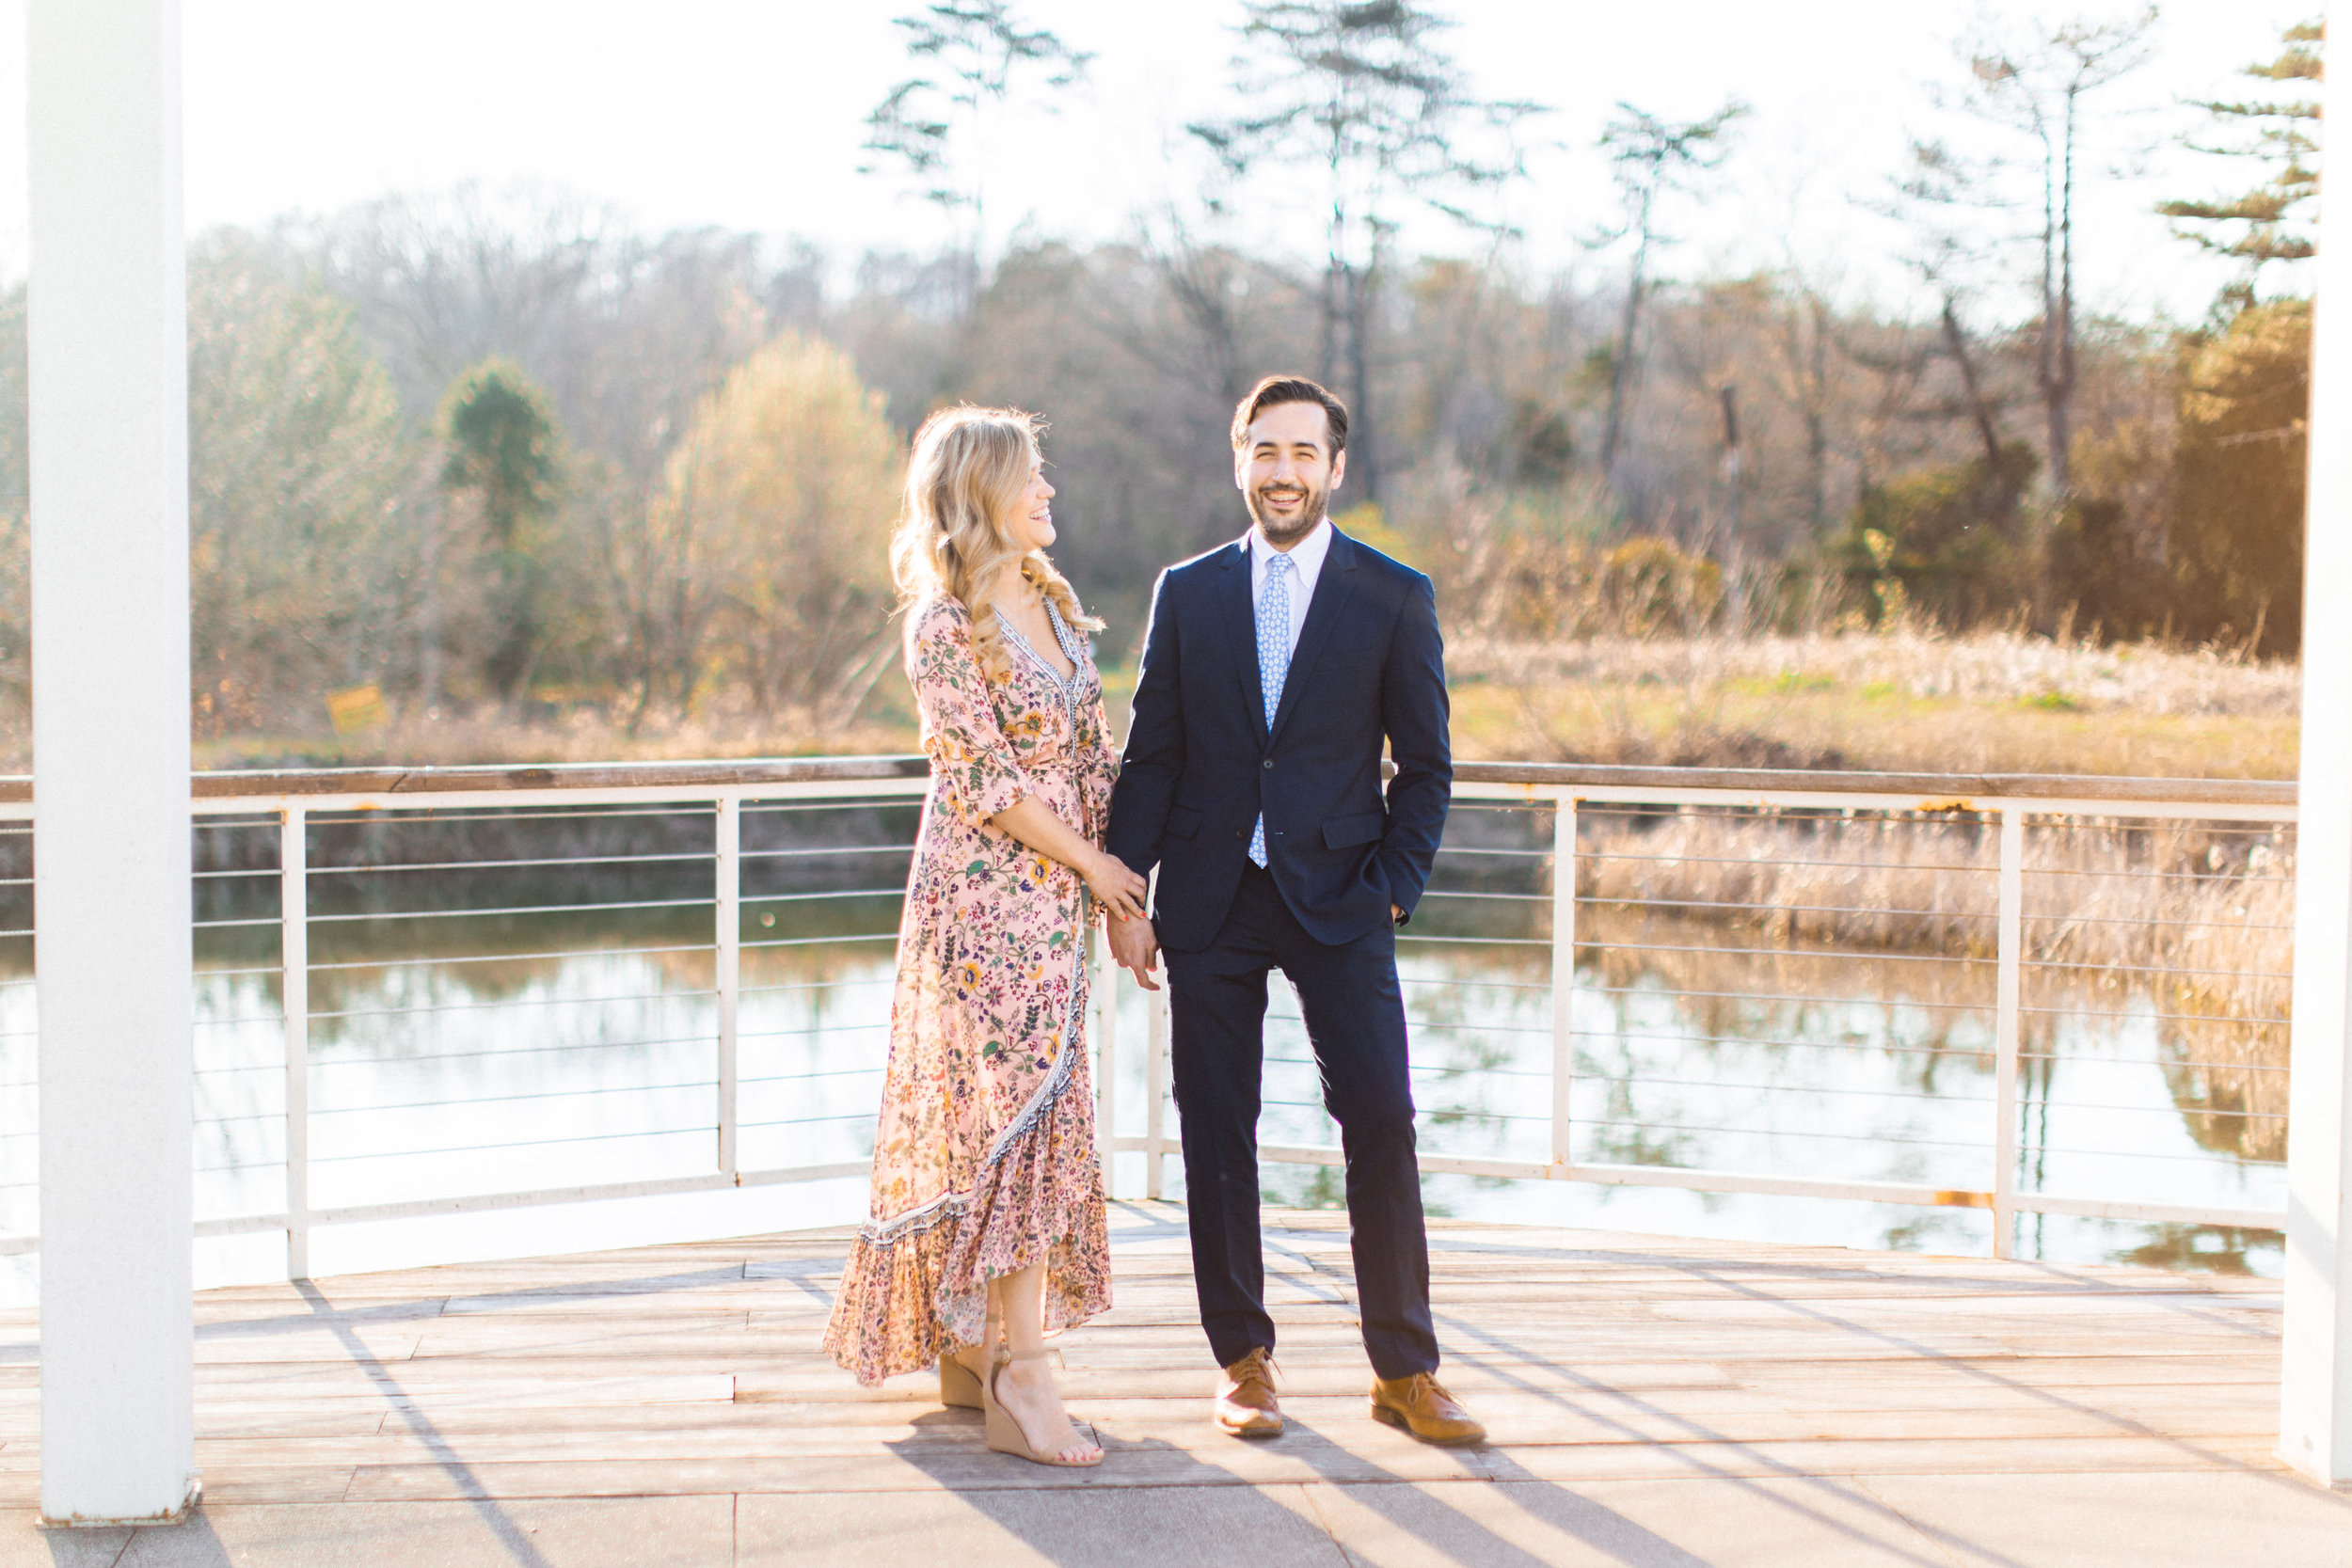 Benny & Sarah Engagement Session at Bernheim Arboretum (Web Use Only)-8.jpg